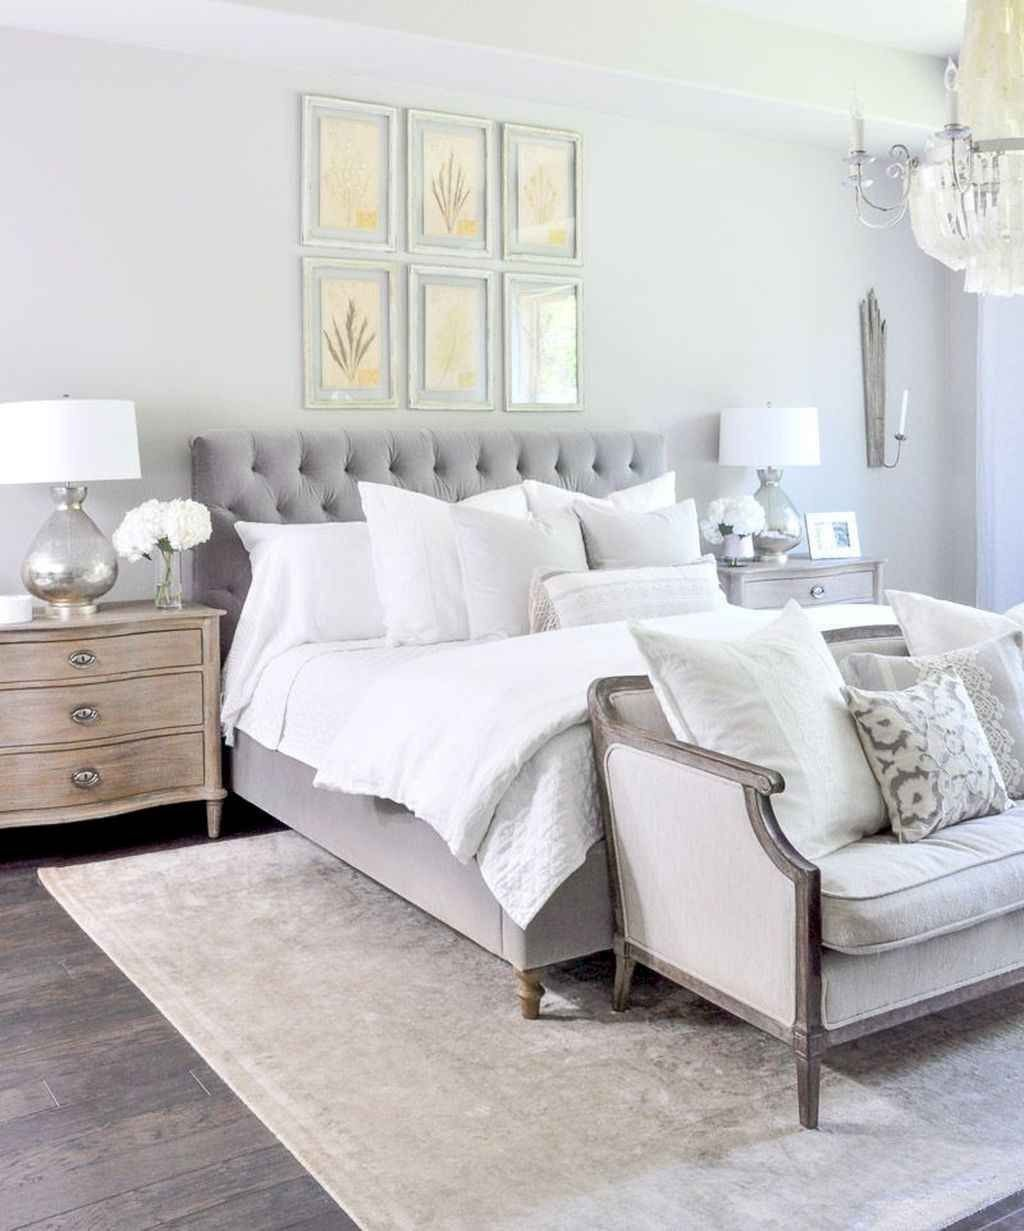 Gray and Gold Bedroom Inspirational 60 Rustic Coastal Master Bedroom Ideas